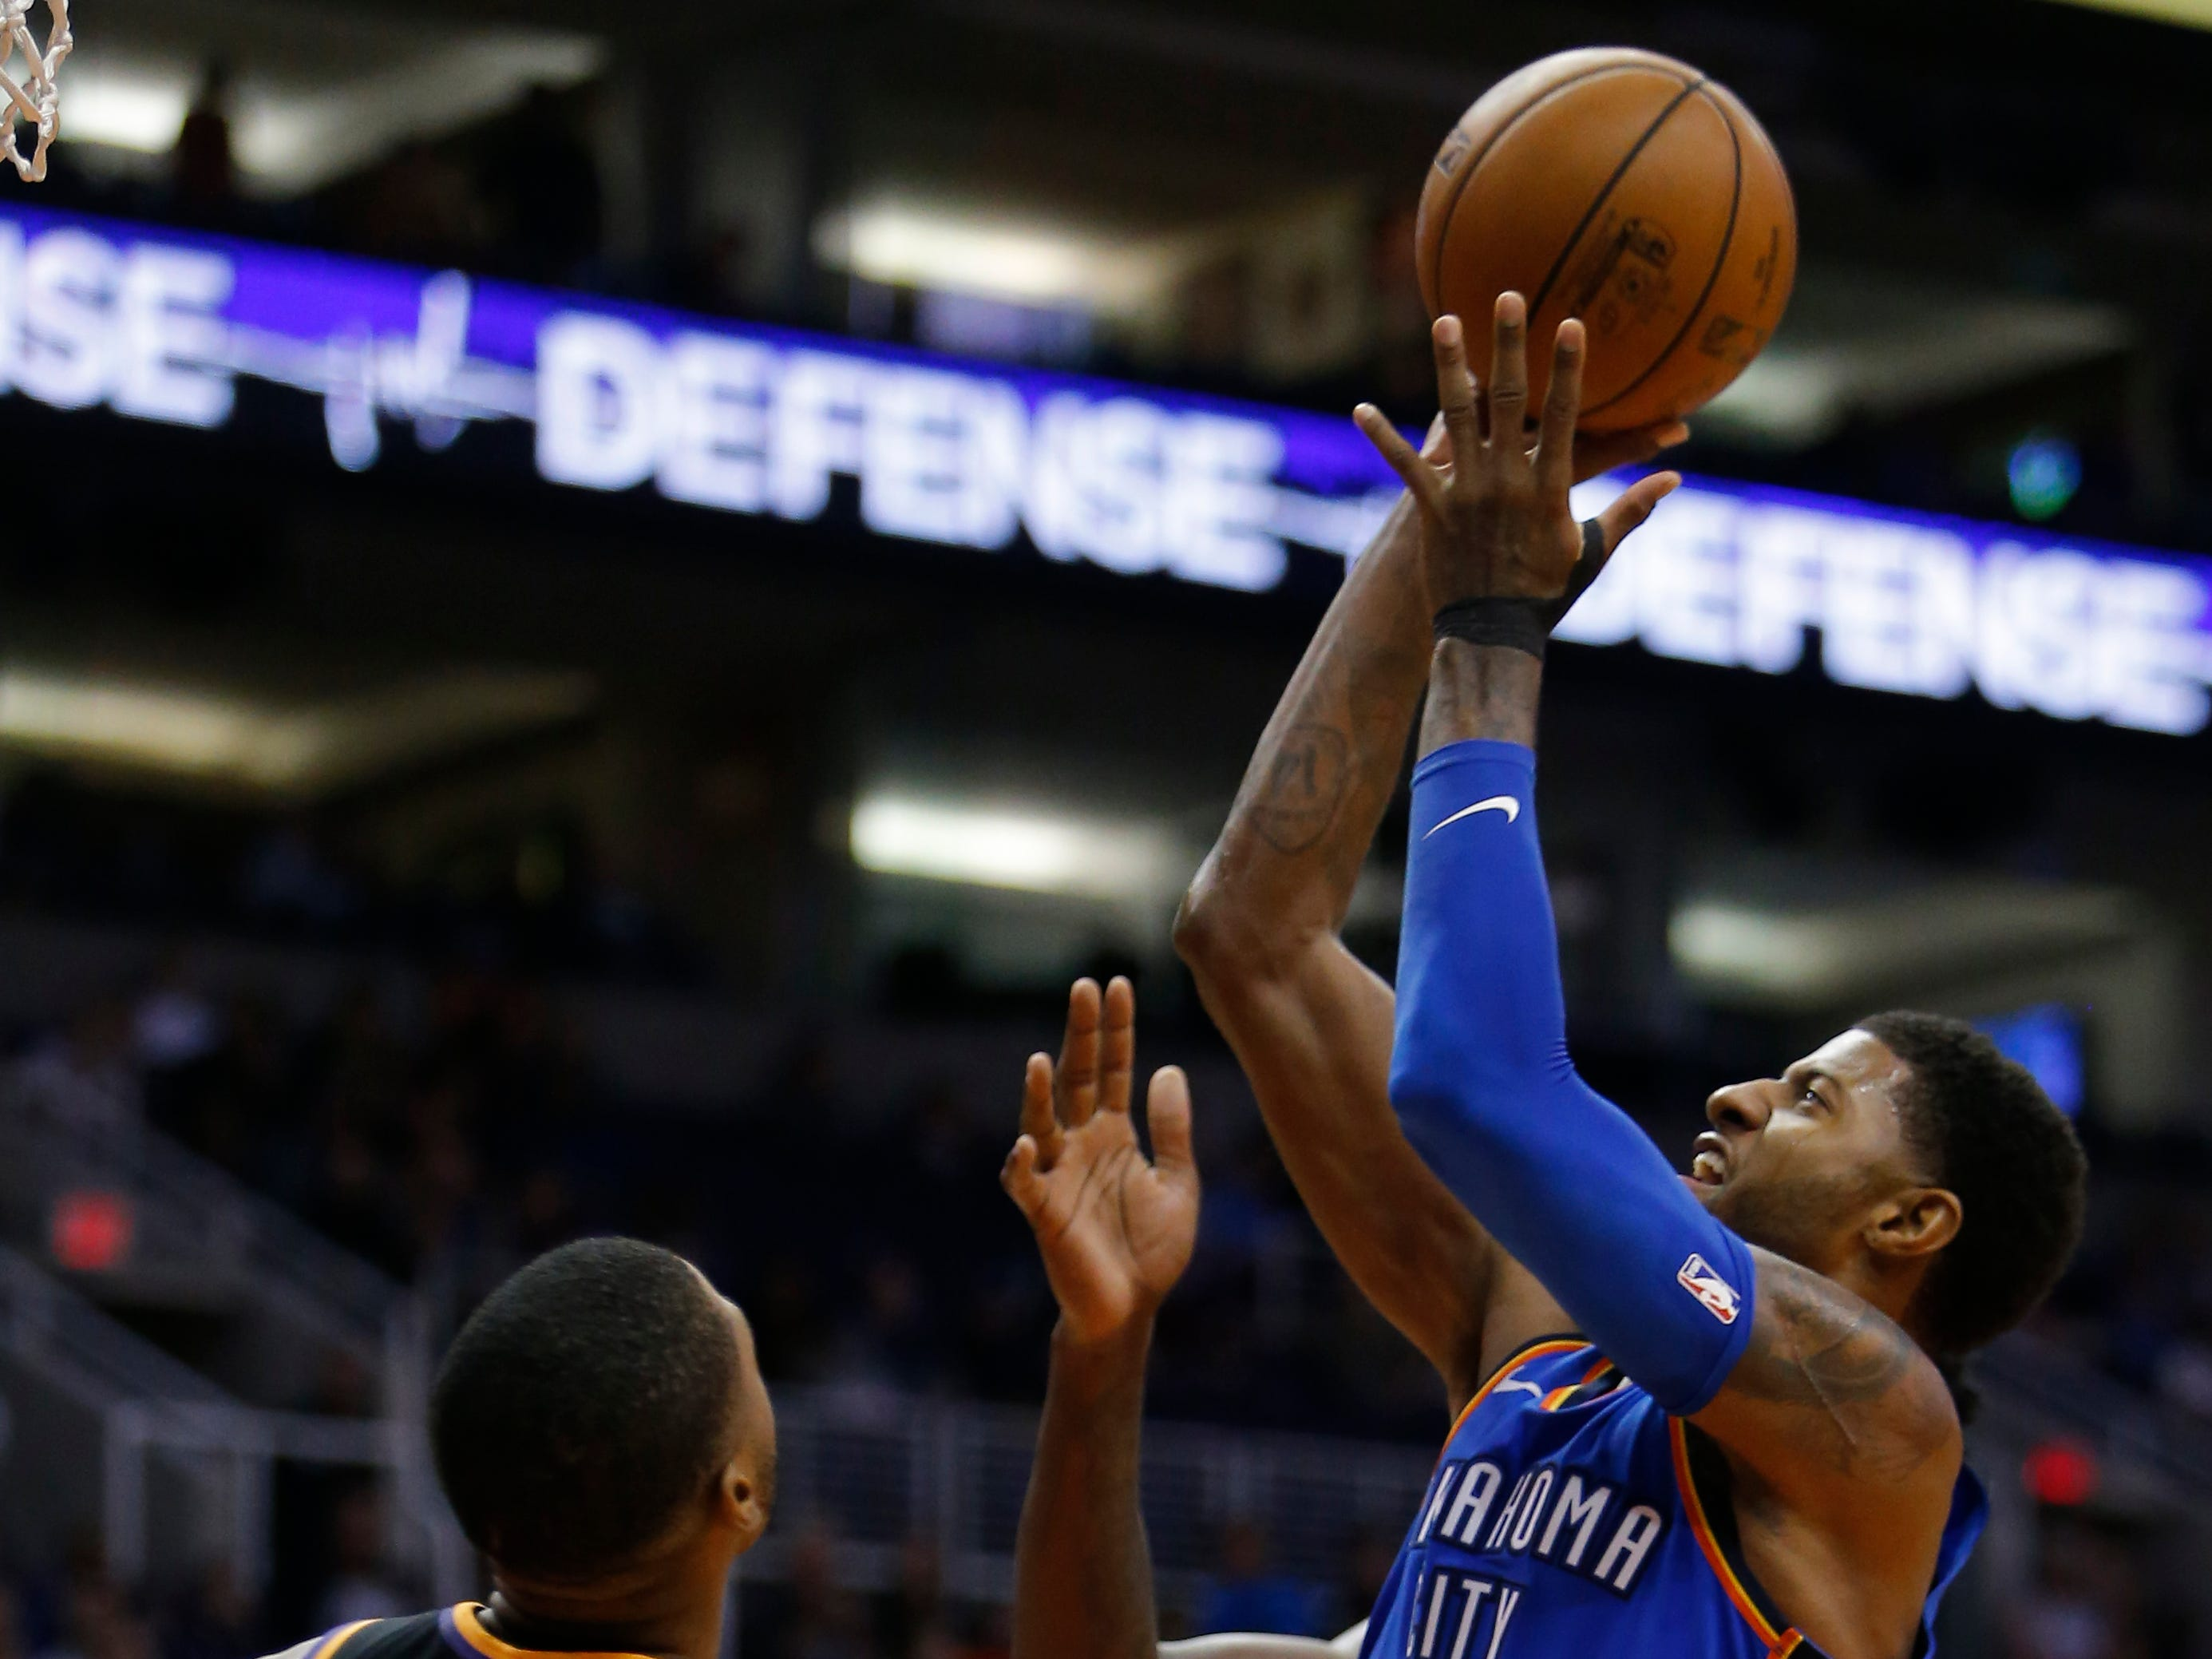 Oklahoma City Thunder forward Paul George (13) in the second half during an NBA basketball game against the Phoenix Suns, Saturday, Nov. 17, 2018, in Phoenix. (AP Photo/Rick Scuteri)